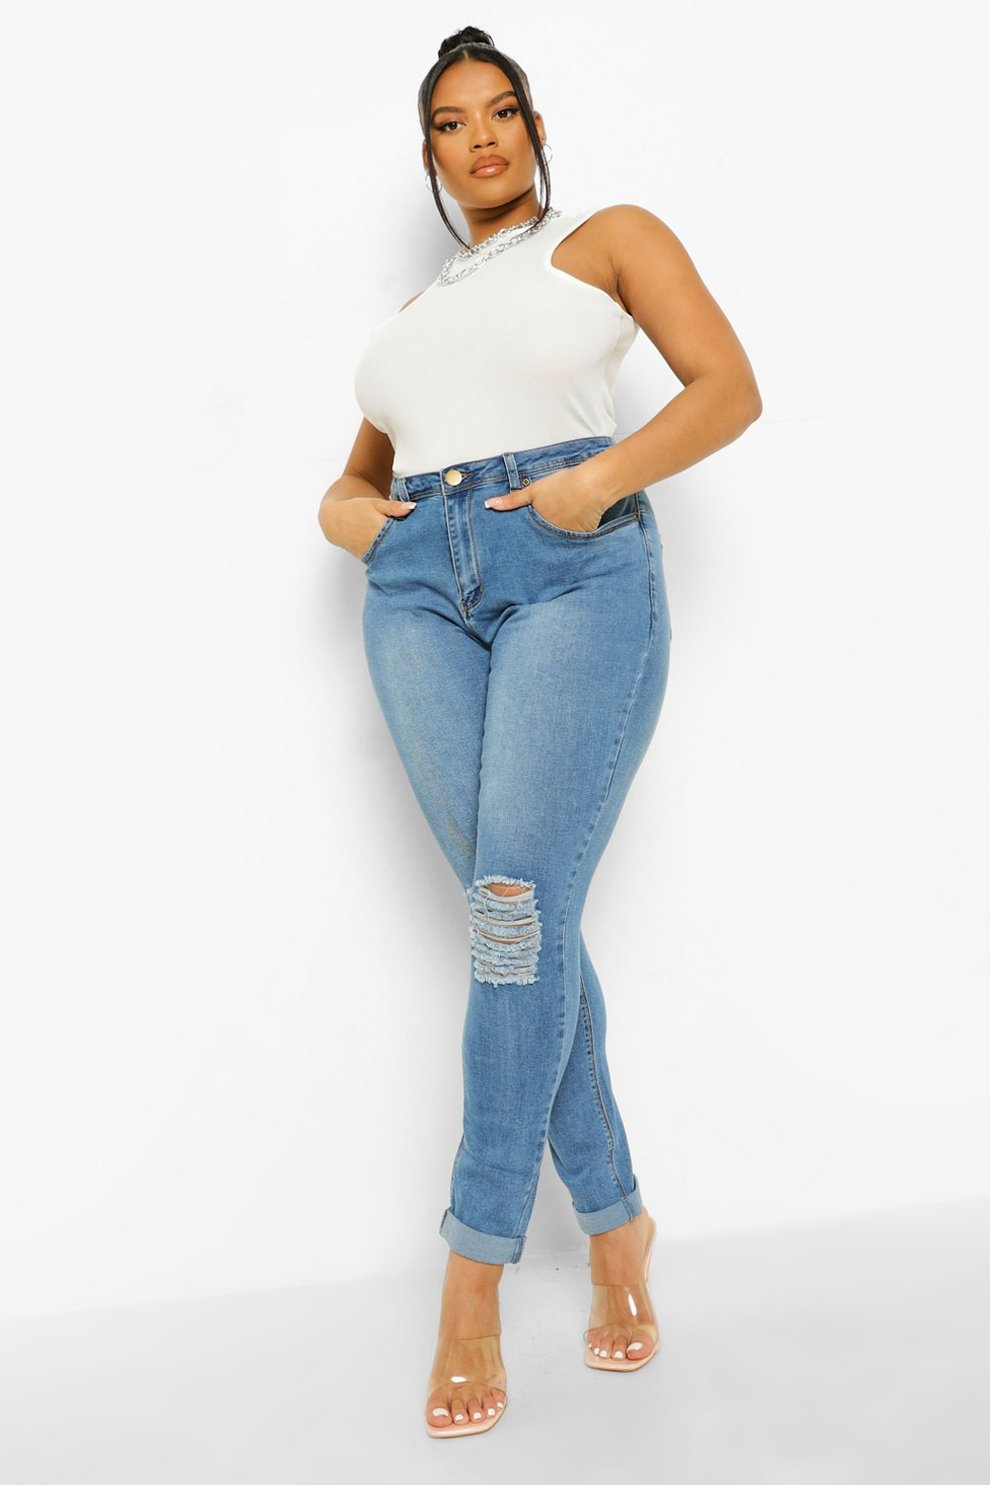 Boohoo Stretch Skinny Jeans With Ripped Knees Clearance Big Discount GR5RVnf9Im